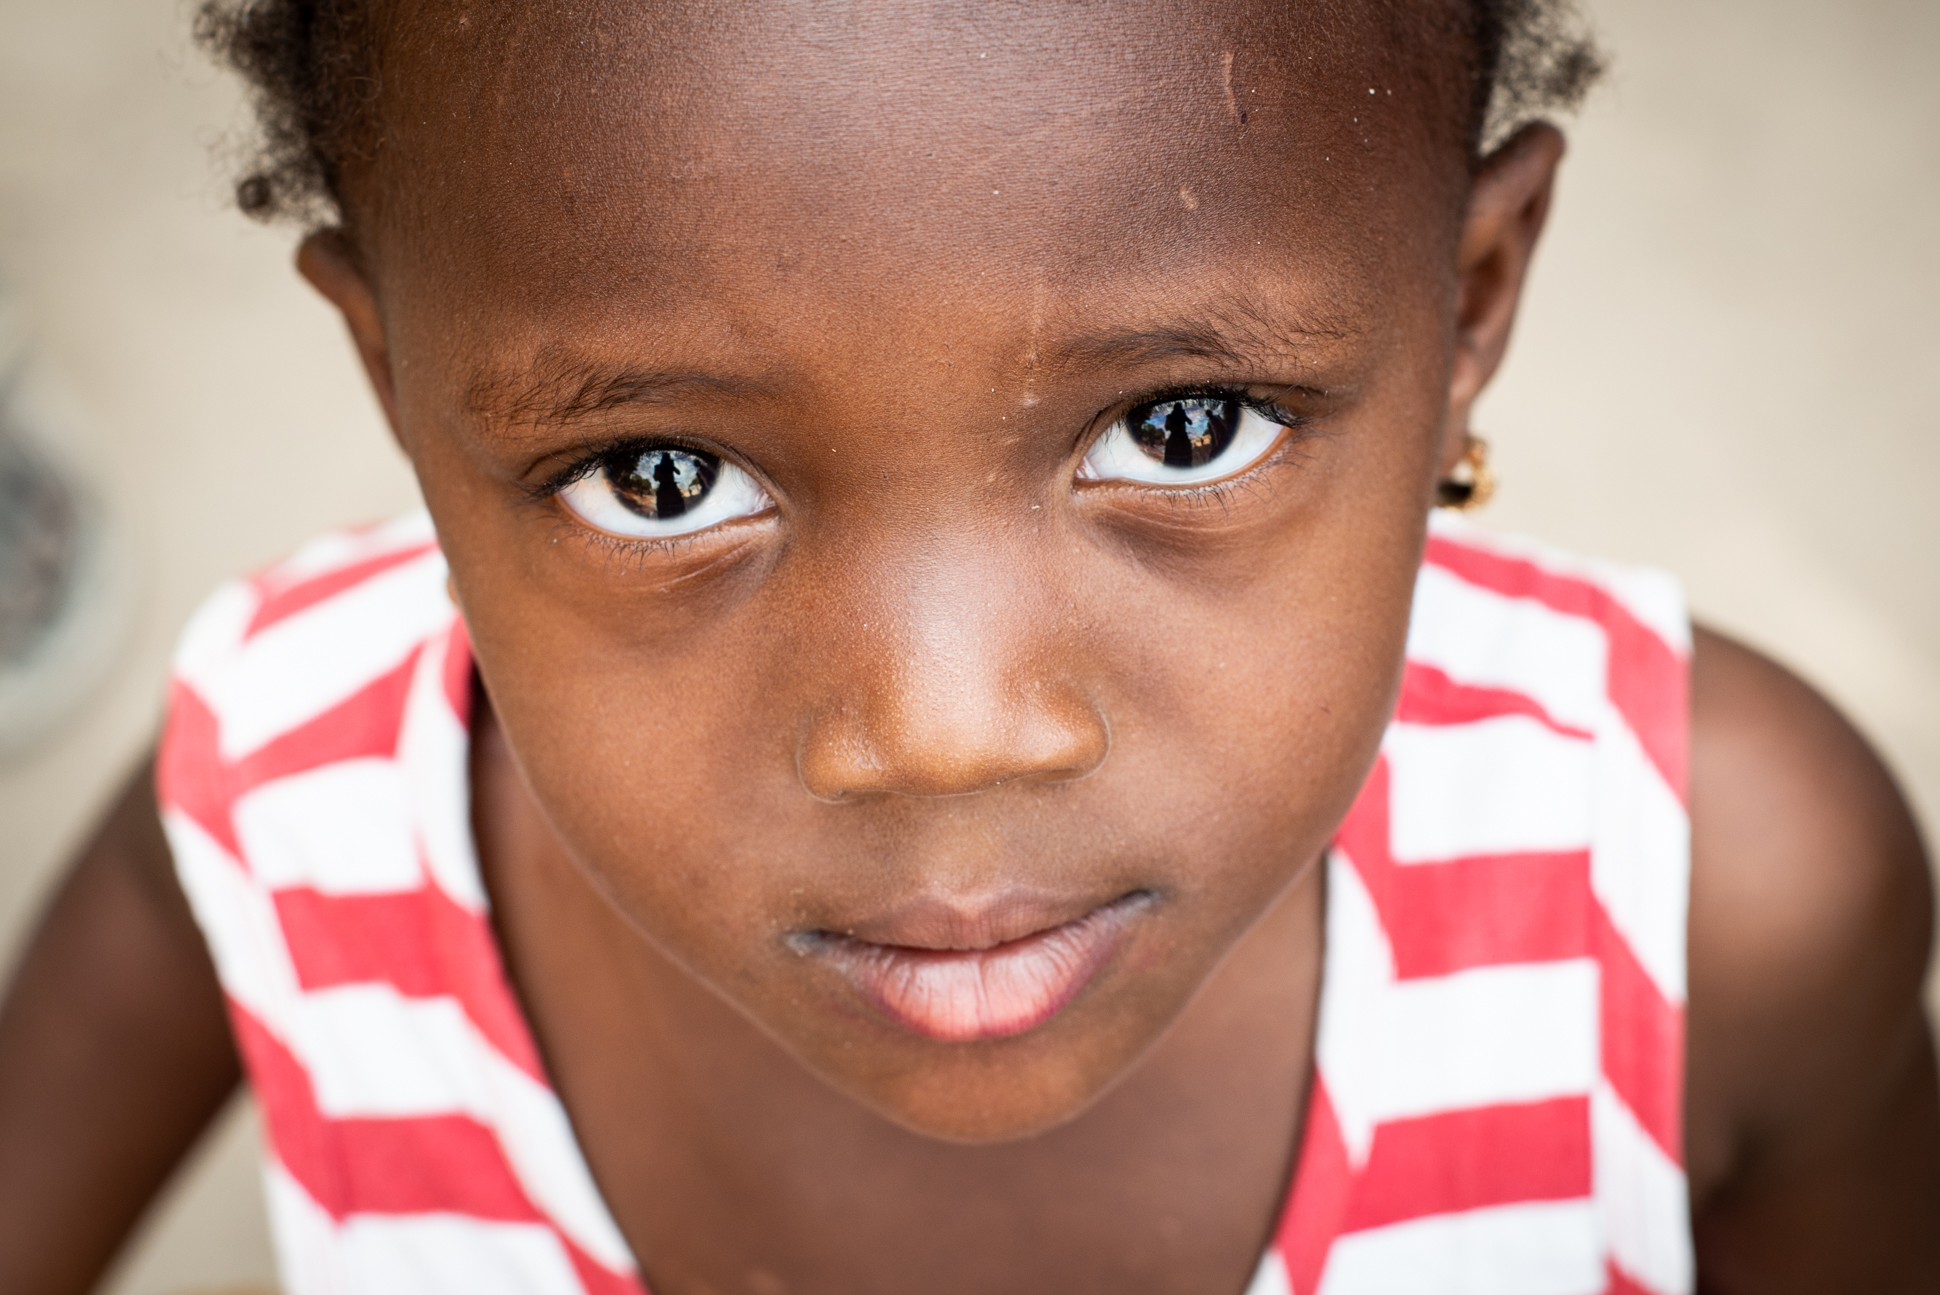 Big eyes looking into the camera. Sweet portrait of a girl by Ellis Photography